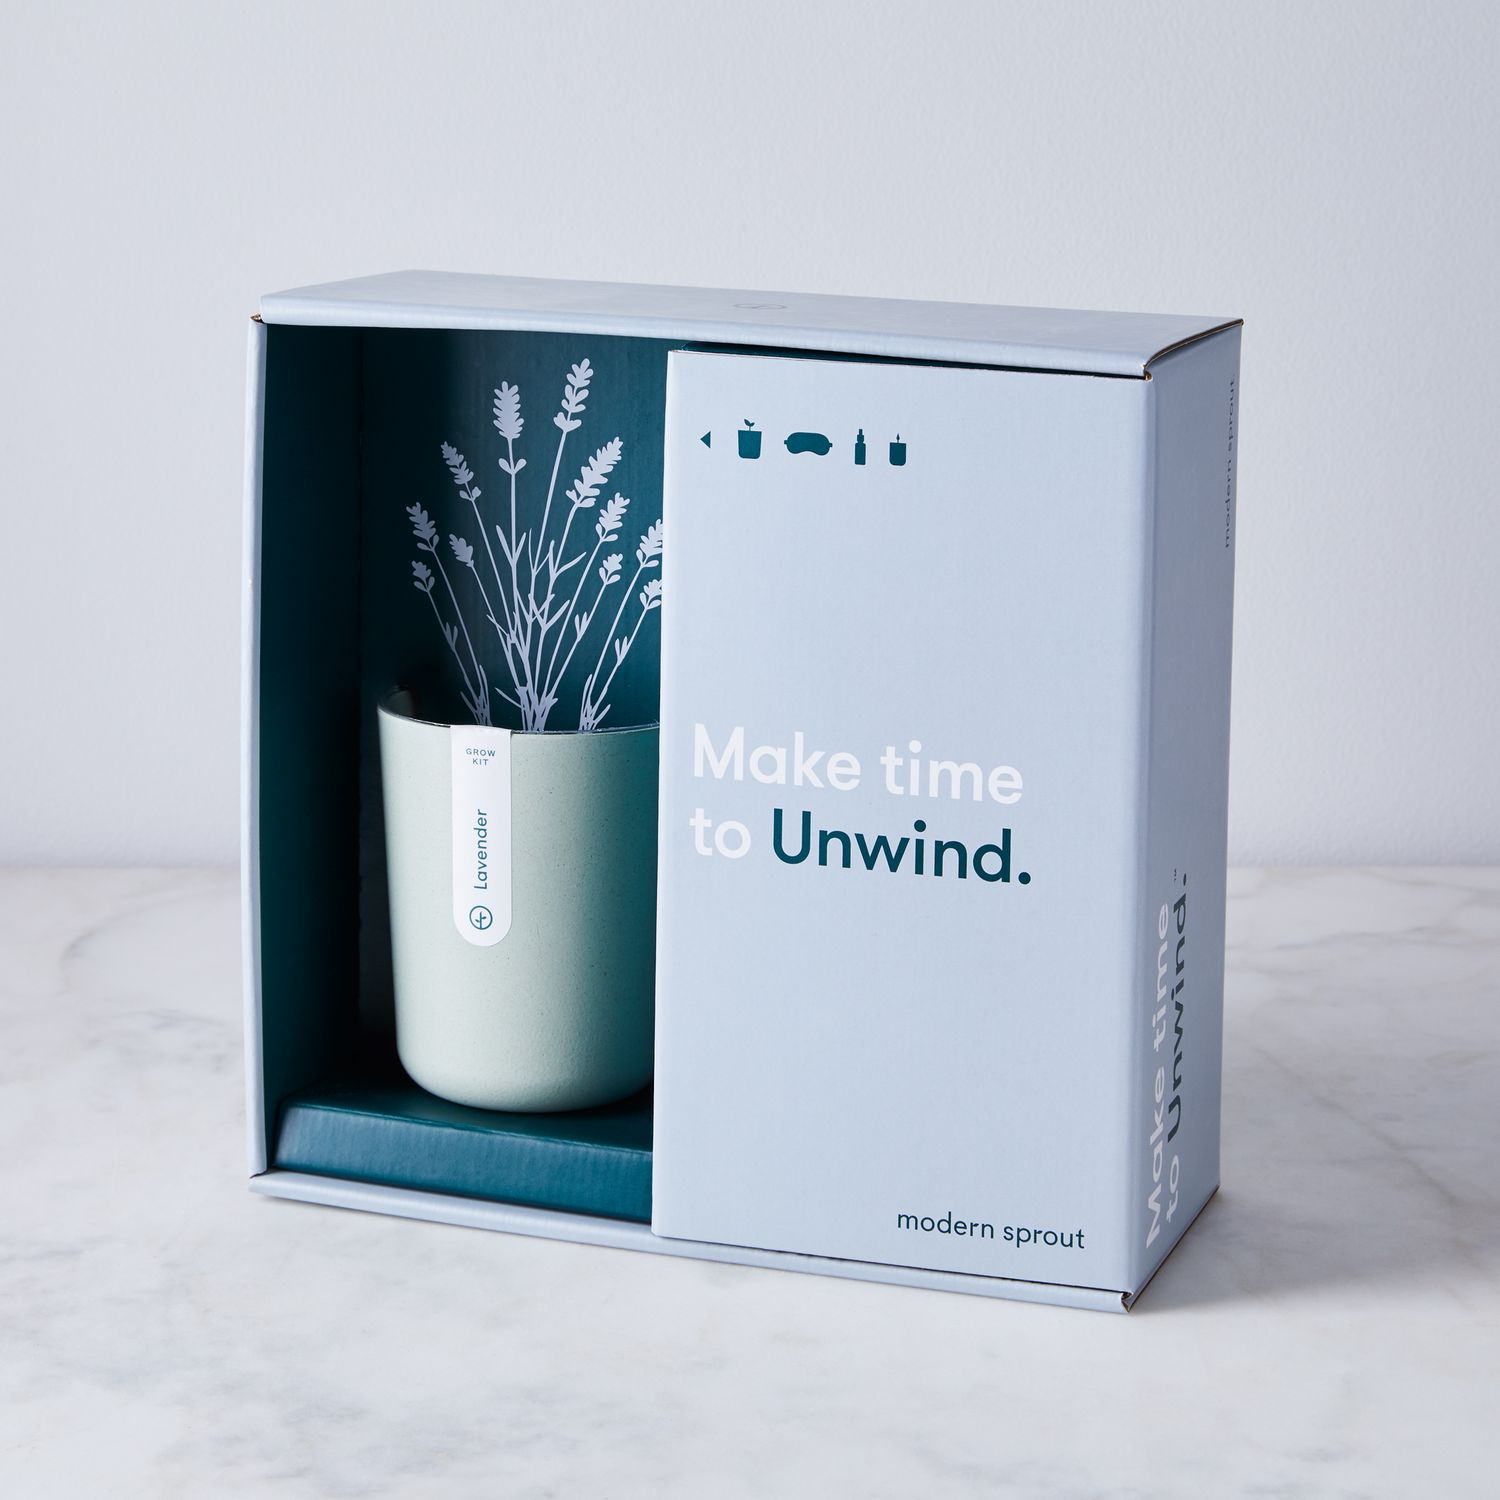 Modern Sprout Live Well Gift Set with Indoor Grow Kit